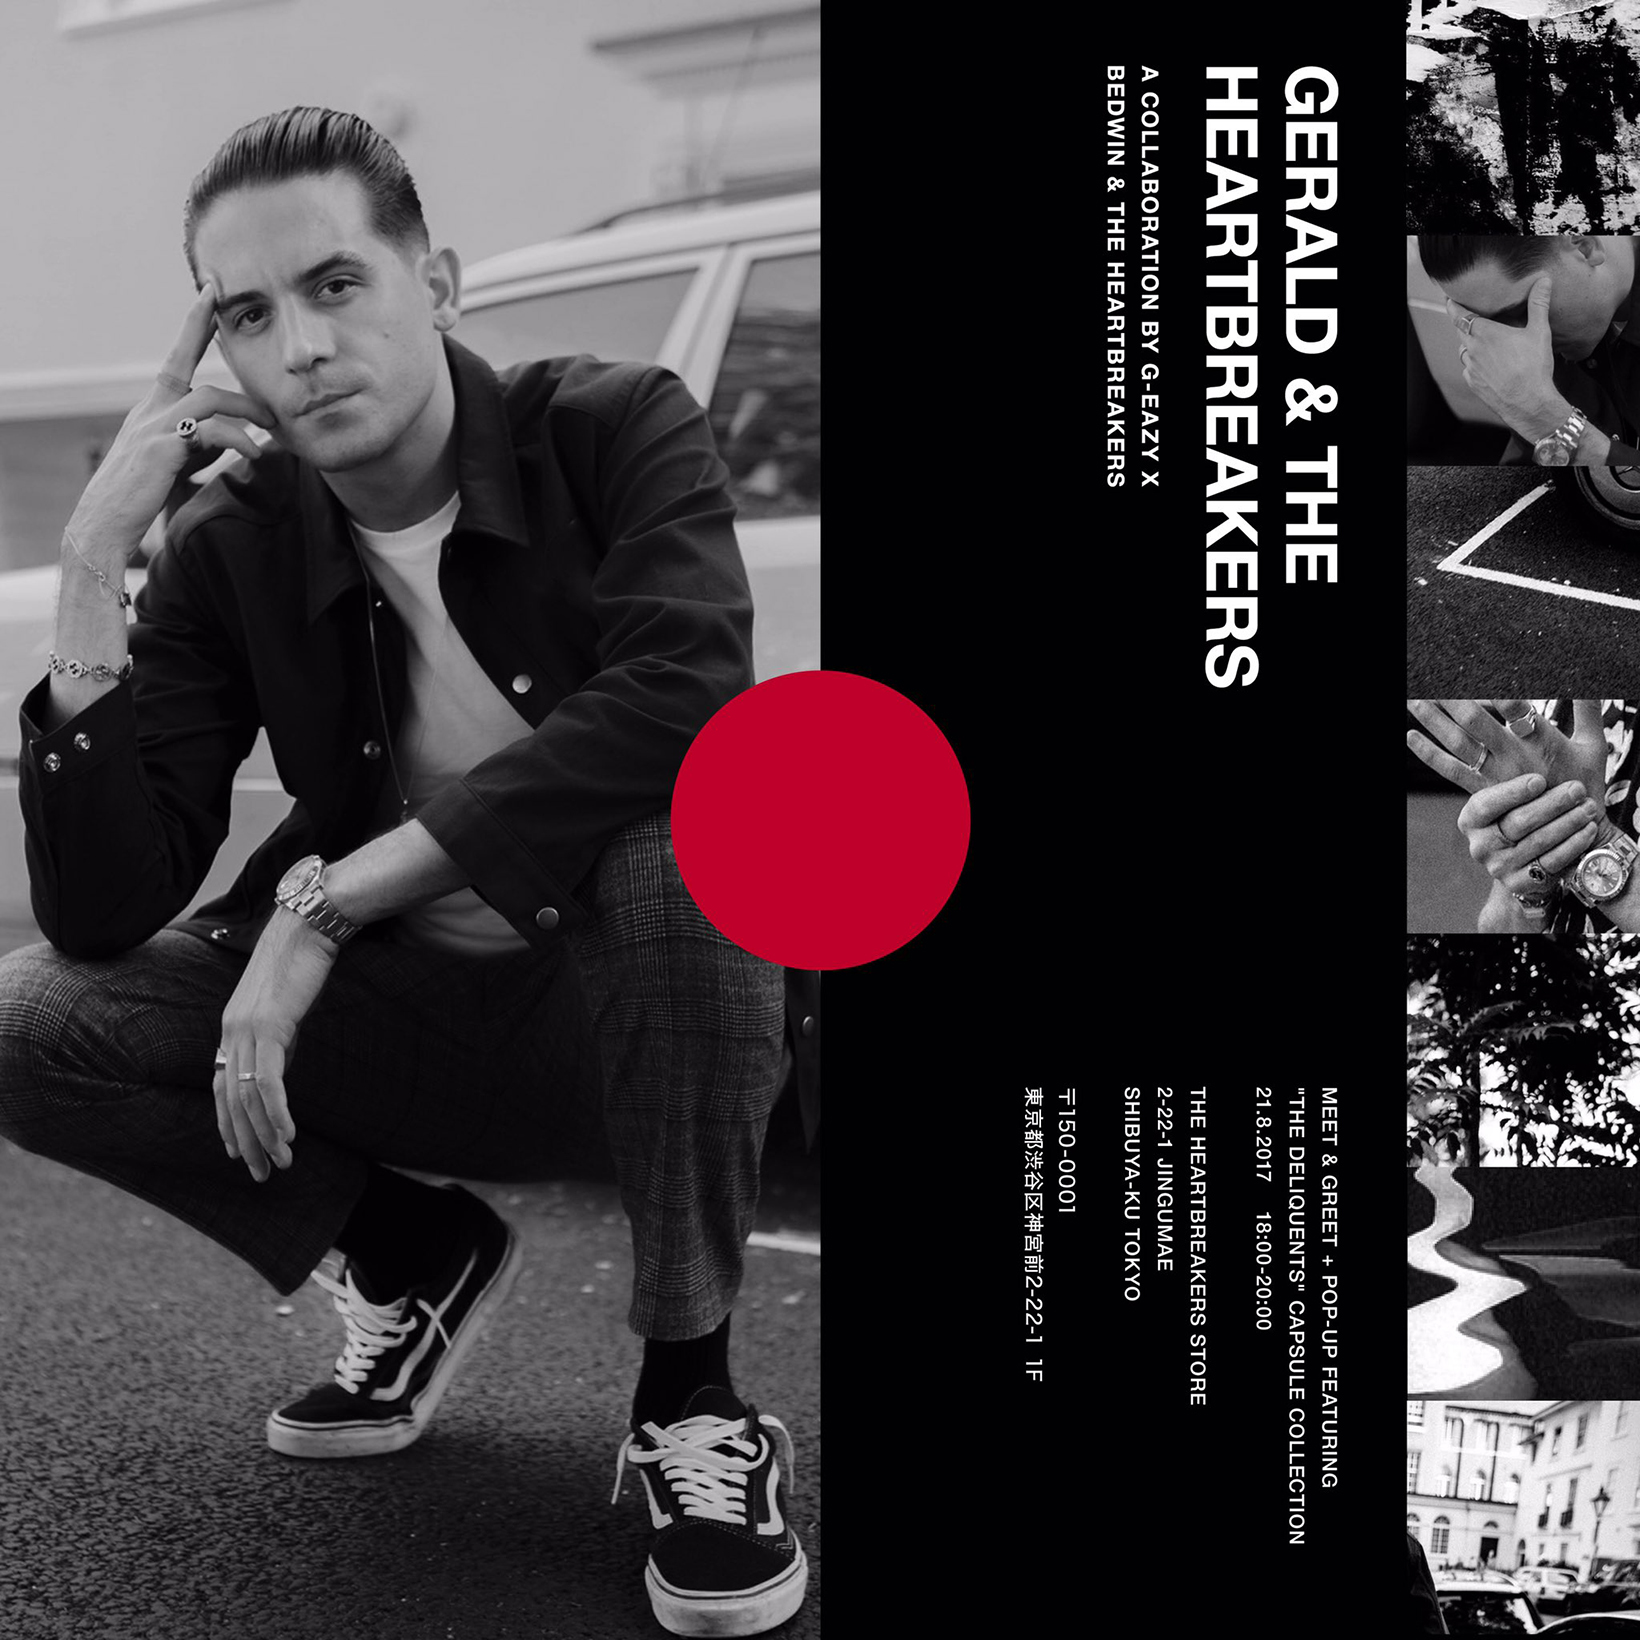 G Eazy BEDWIN GERALD THE HEARTBREAKERS Collaboration Collection Announcement Announced Pop Up Shop